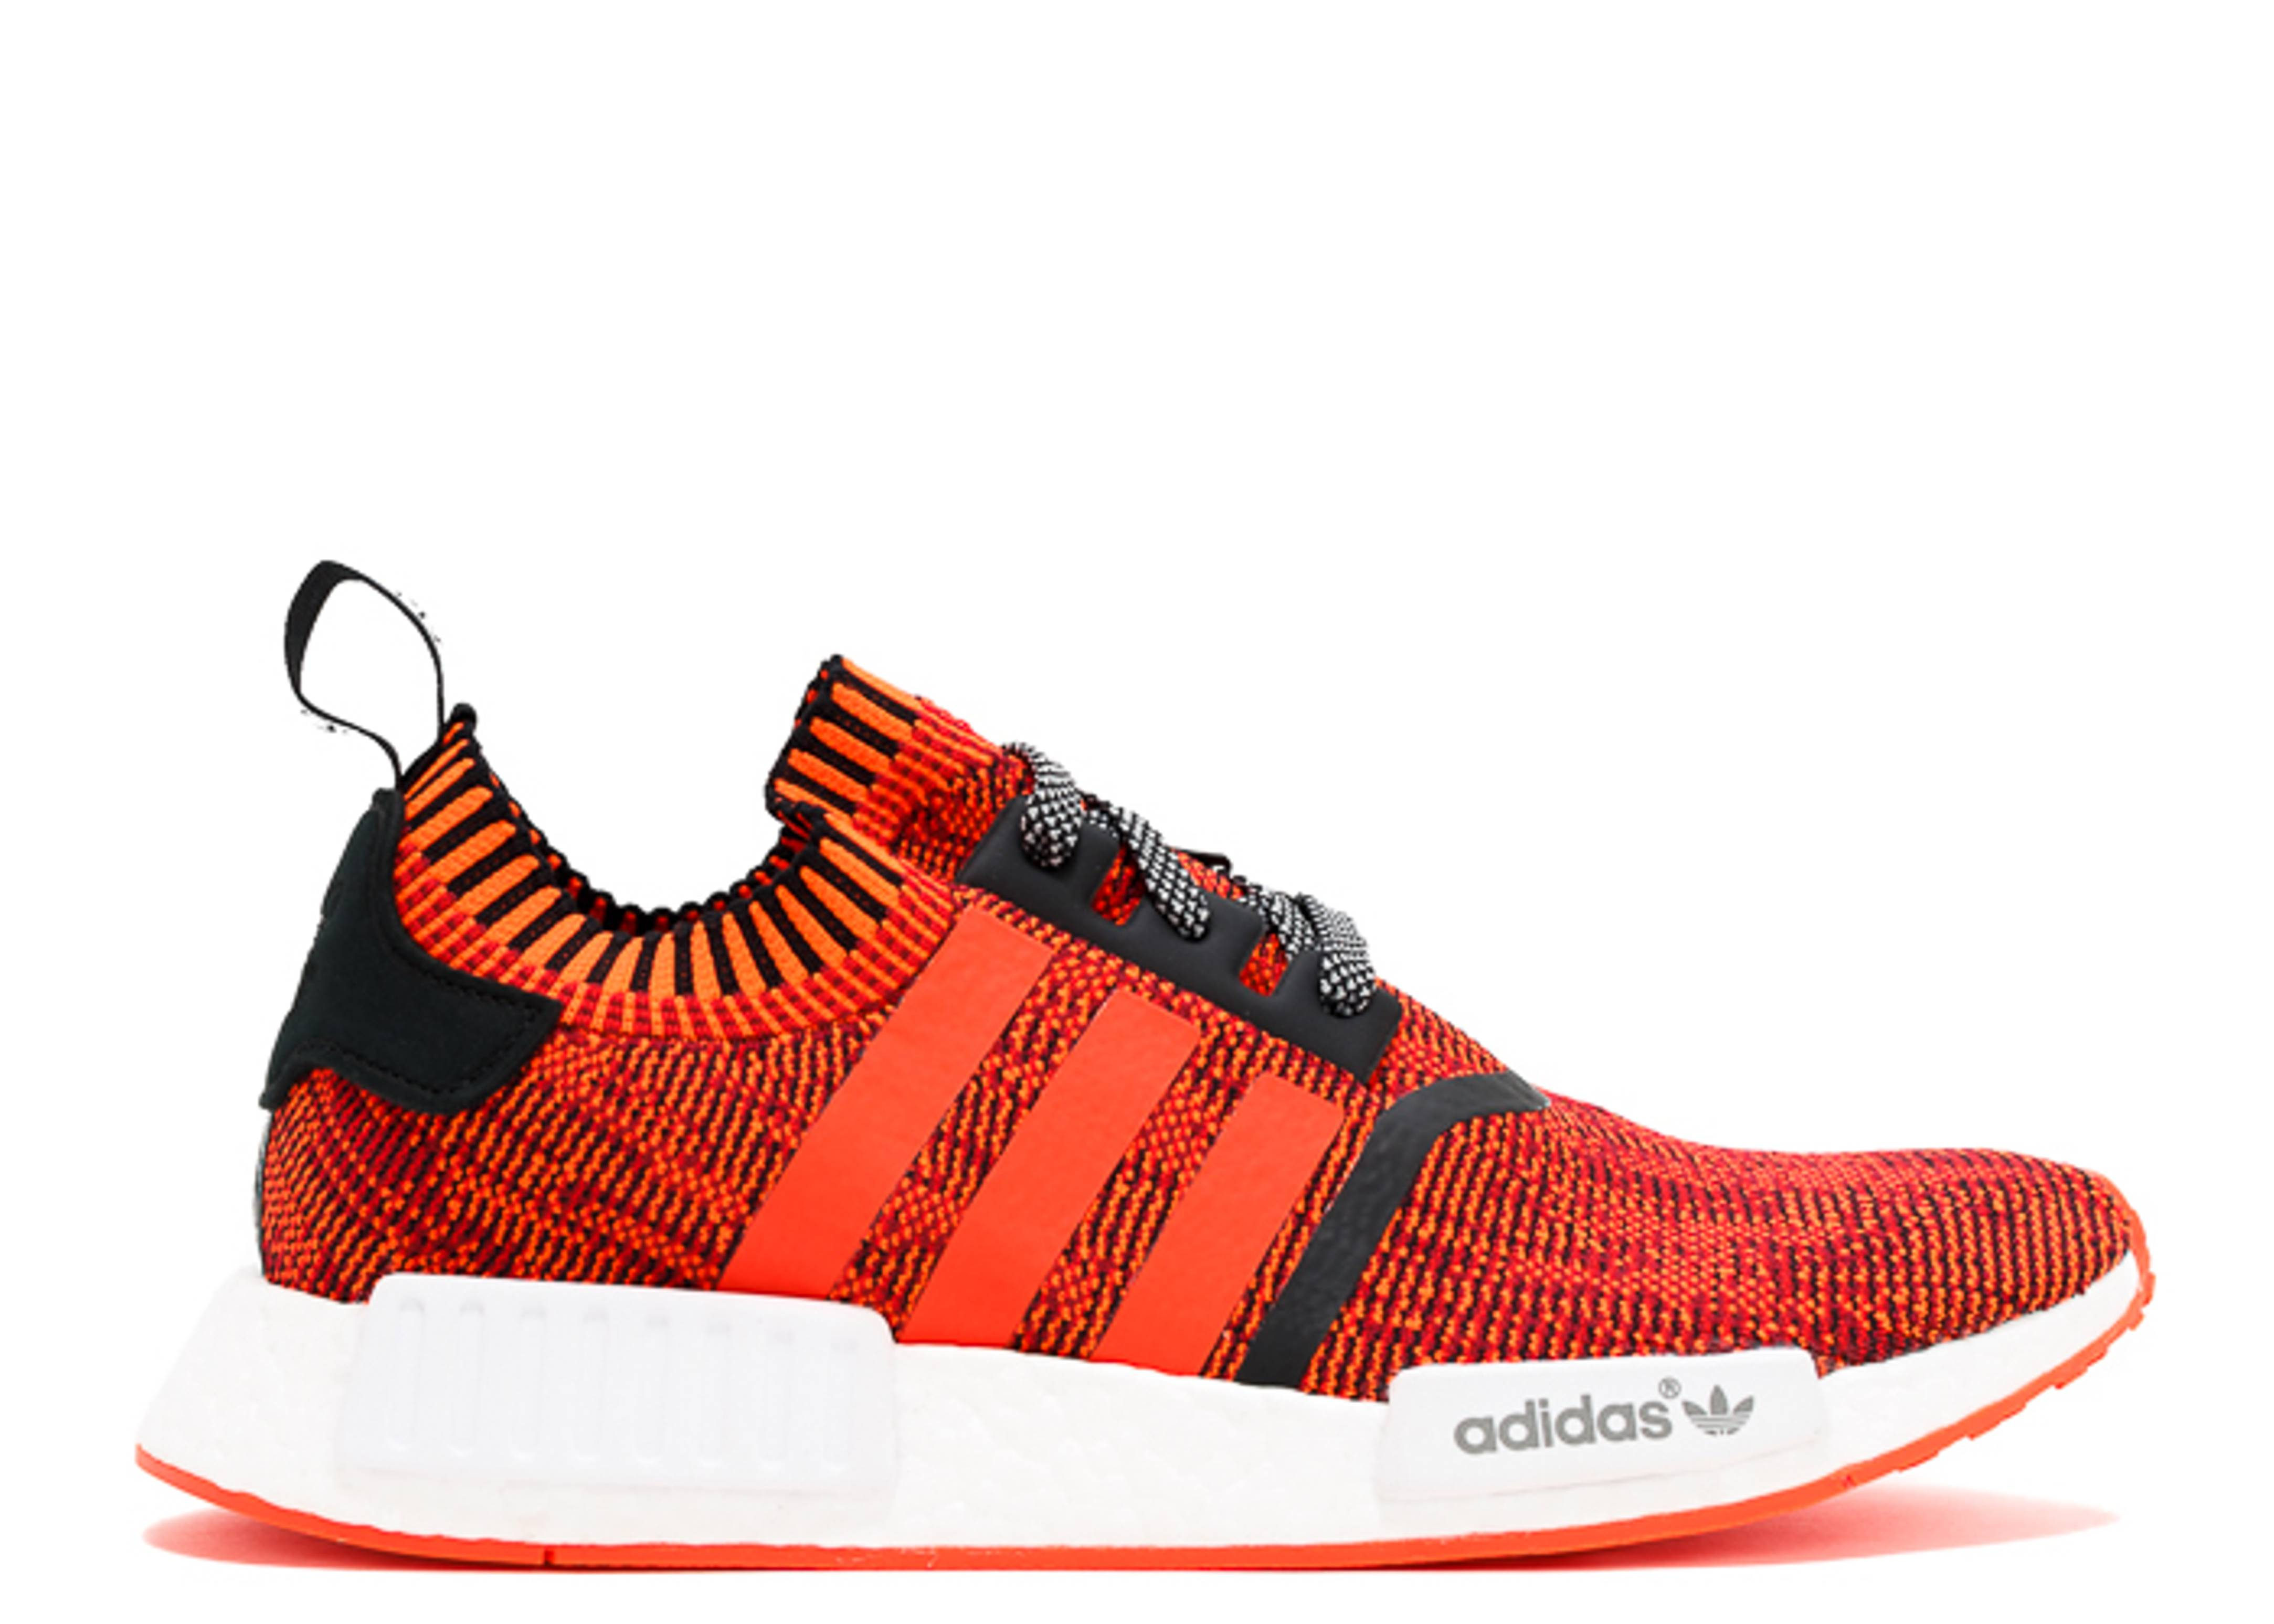 Adidas Nmd R1 Red